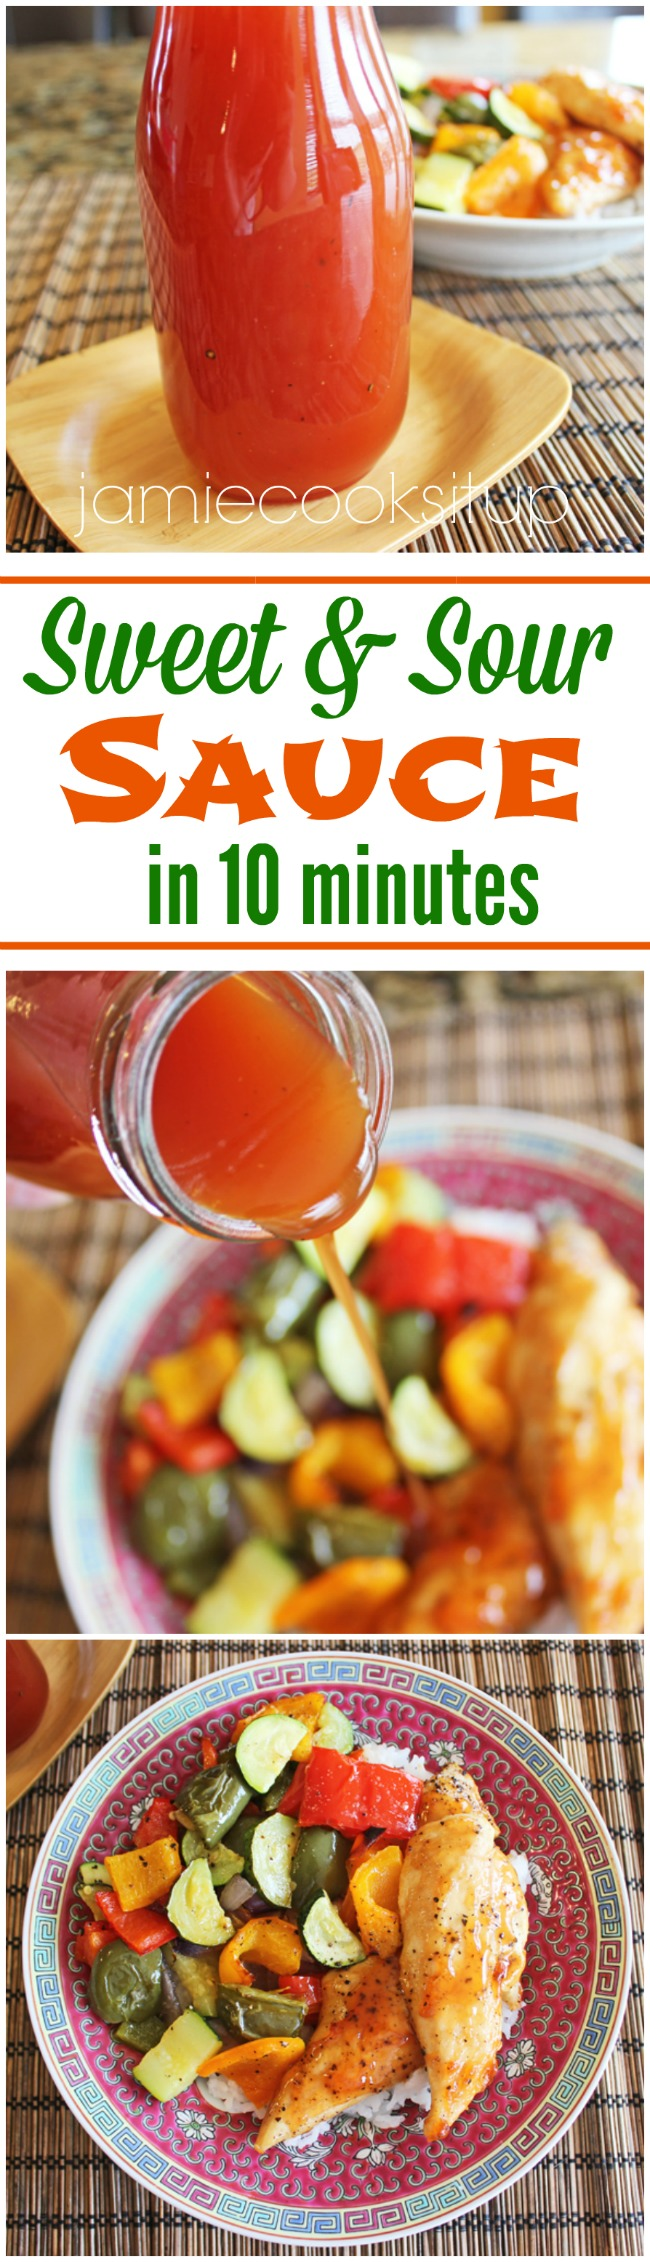 Sweet and Sour Sauce in 10 minutes from Jamie Cooks It Up